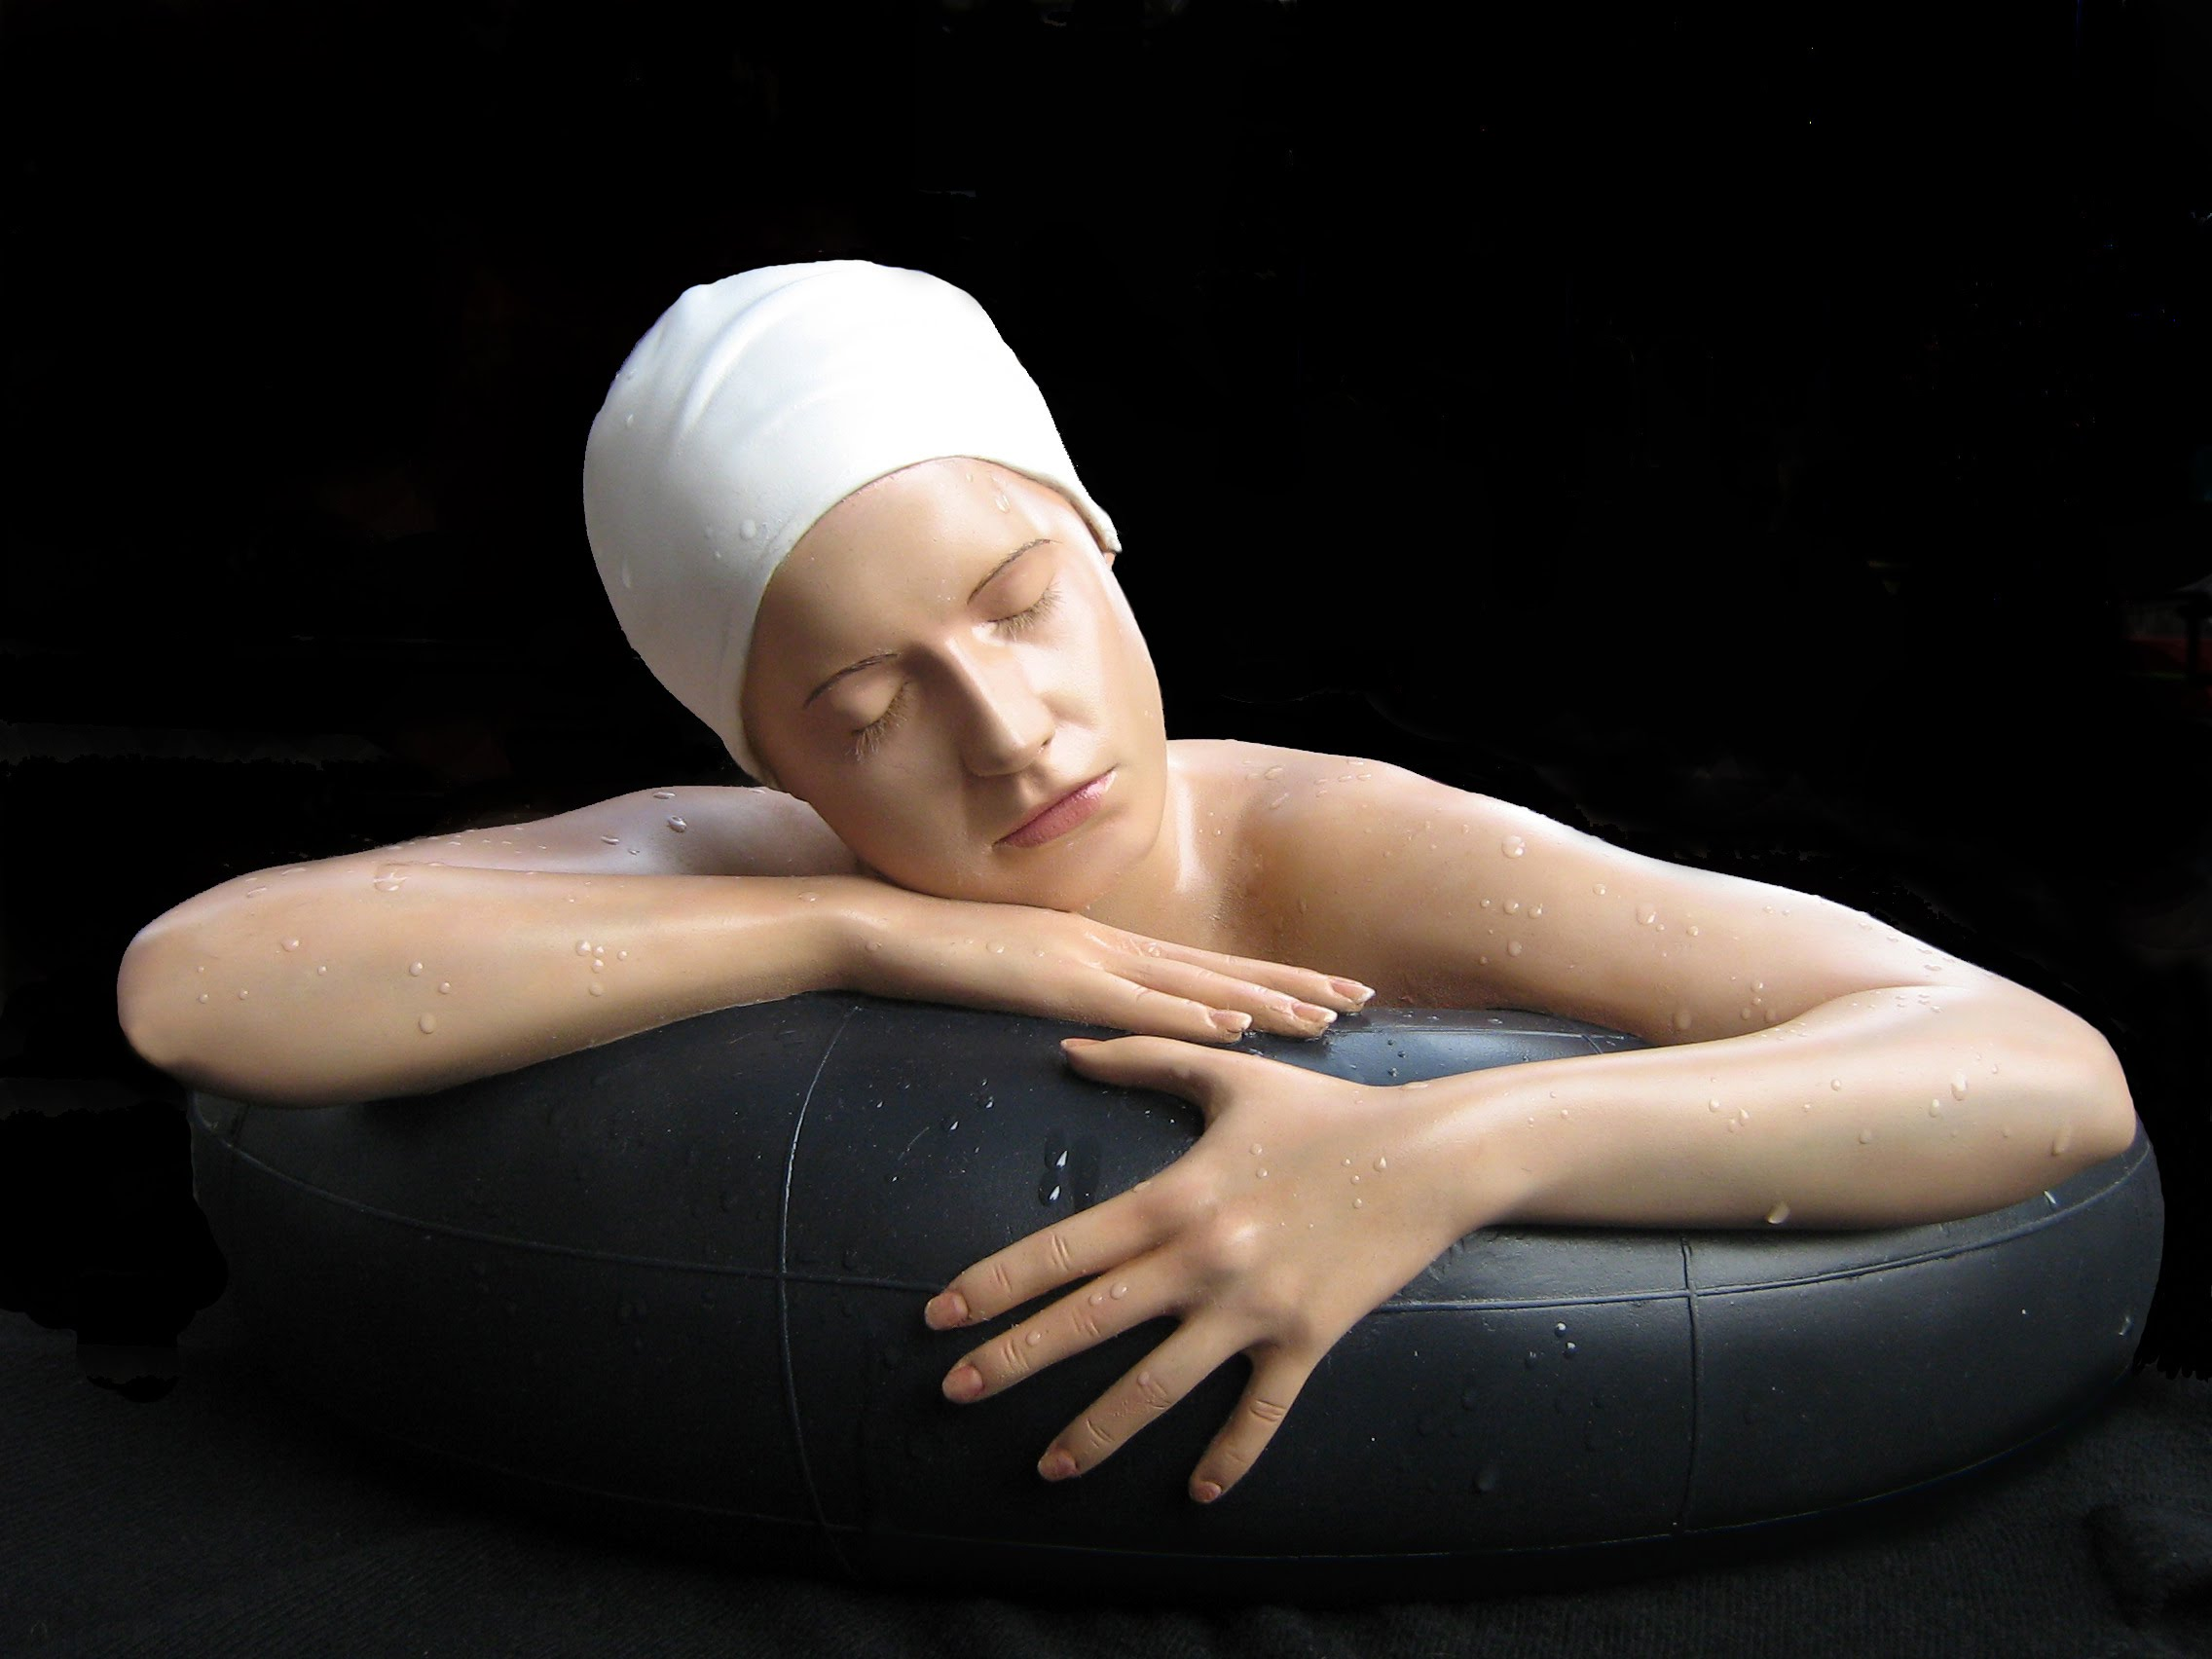 relistic sculpture by carole feuerman